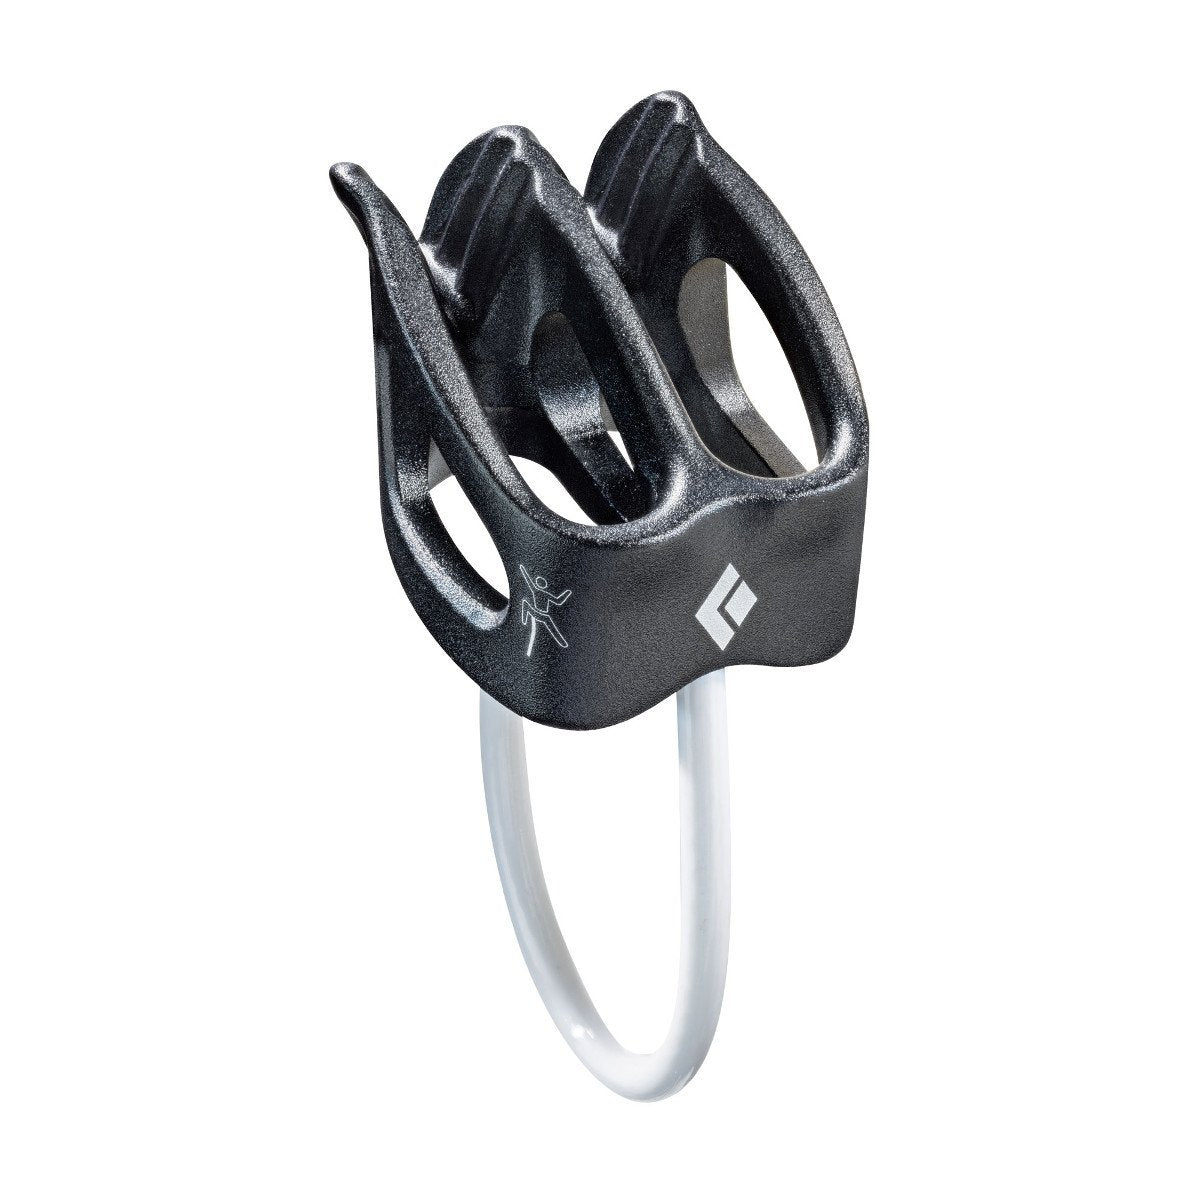 Black Diamond ATC XP belay device, in gun metal grey colour